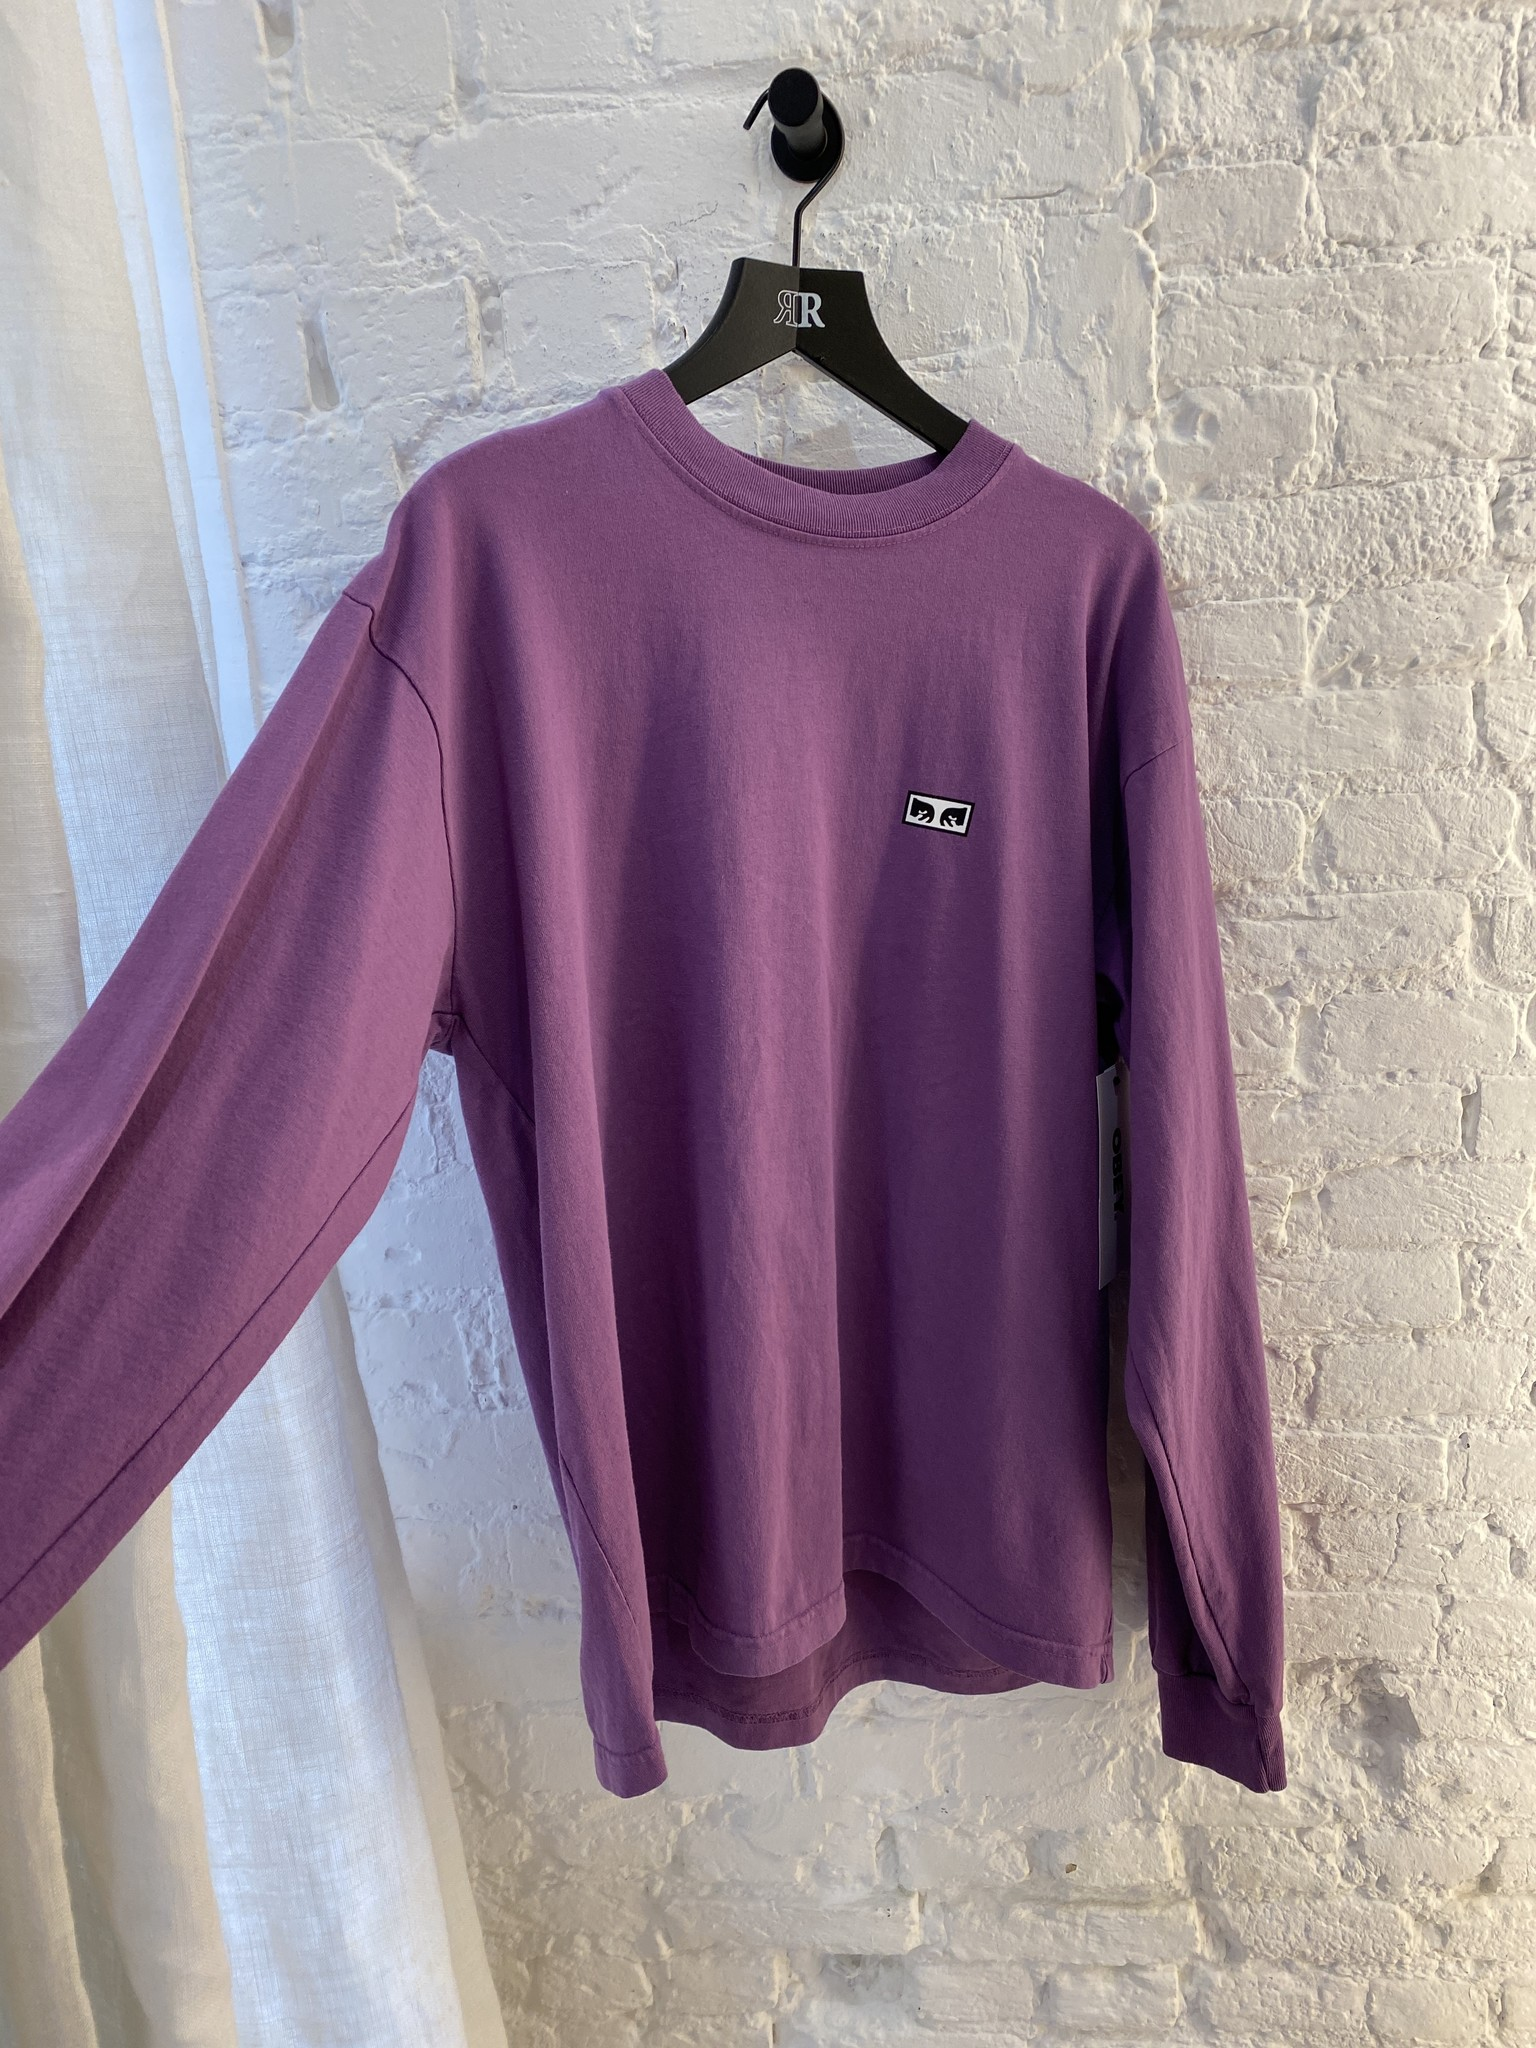 Eyes Longsleeve-1